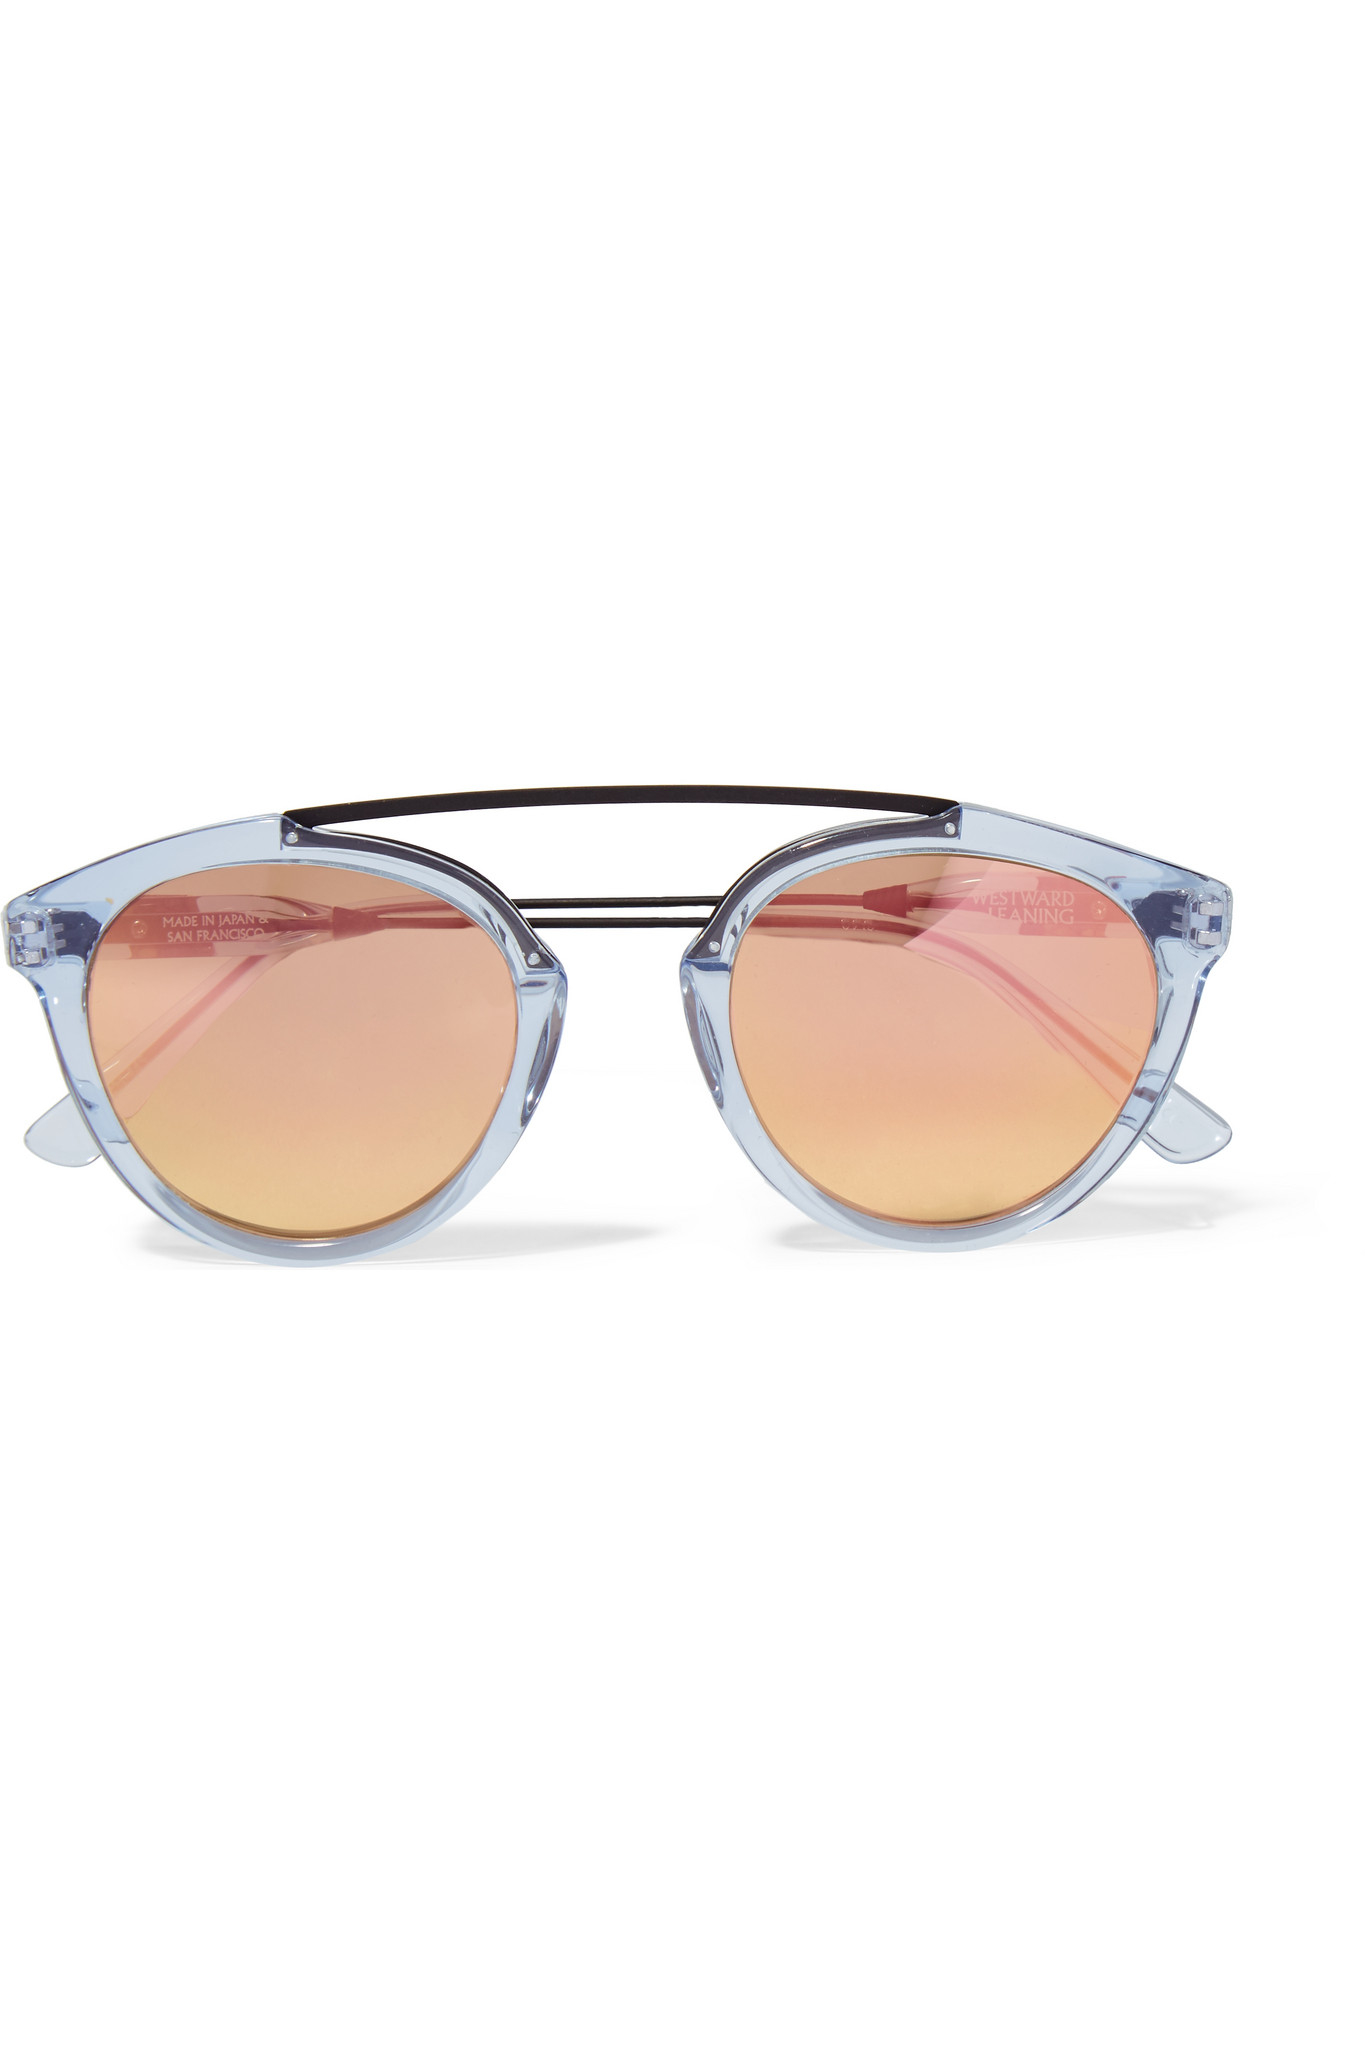 f4ff36075651 Westward Leaning Flower 14 Aviator-style Acetate And Metal Mirrored ...